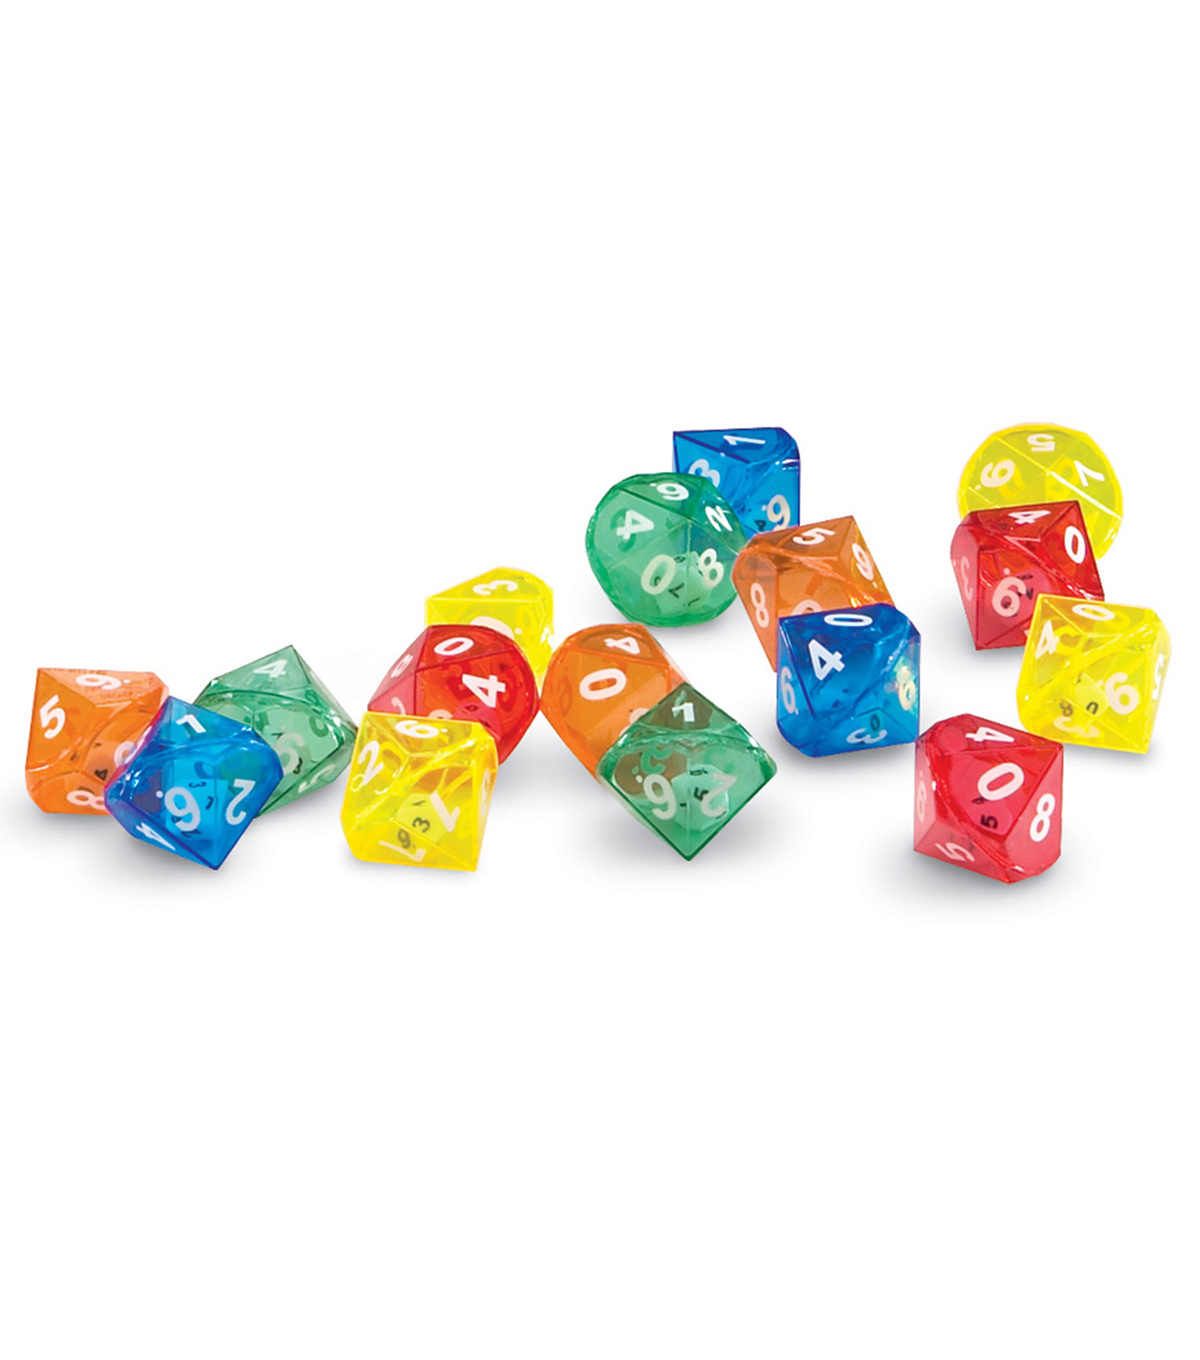 Learning Resources 10-Sided Dice in Dice, Pack of 72